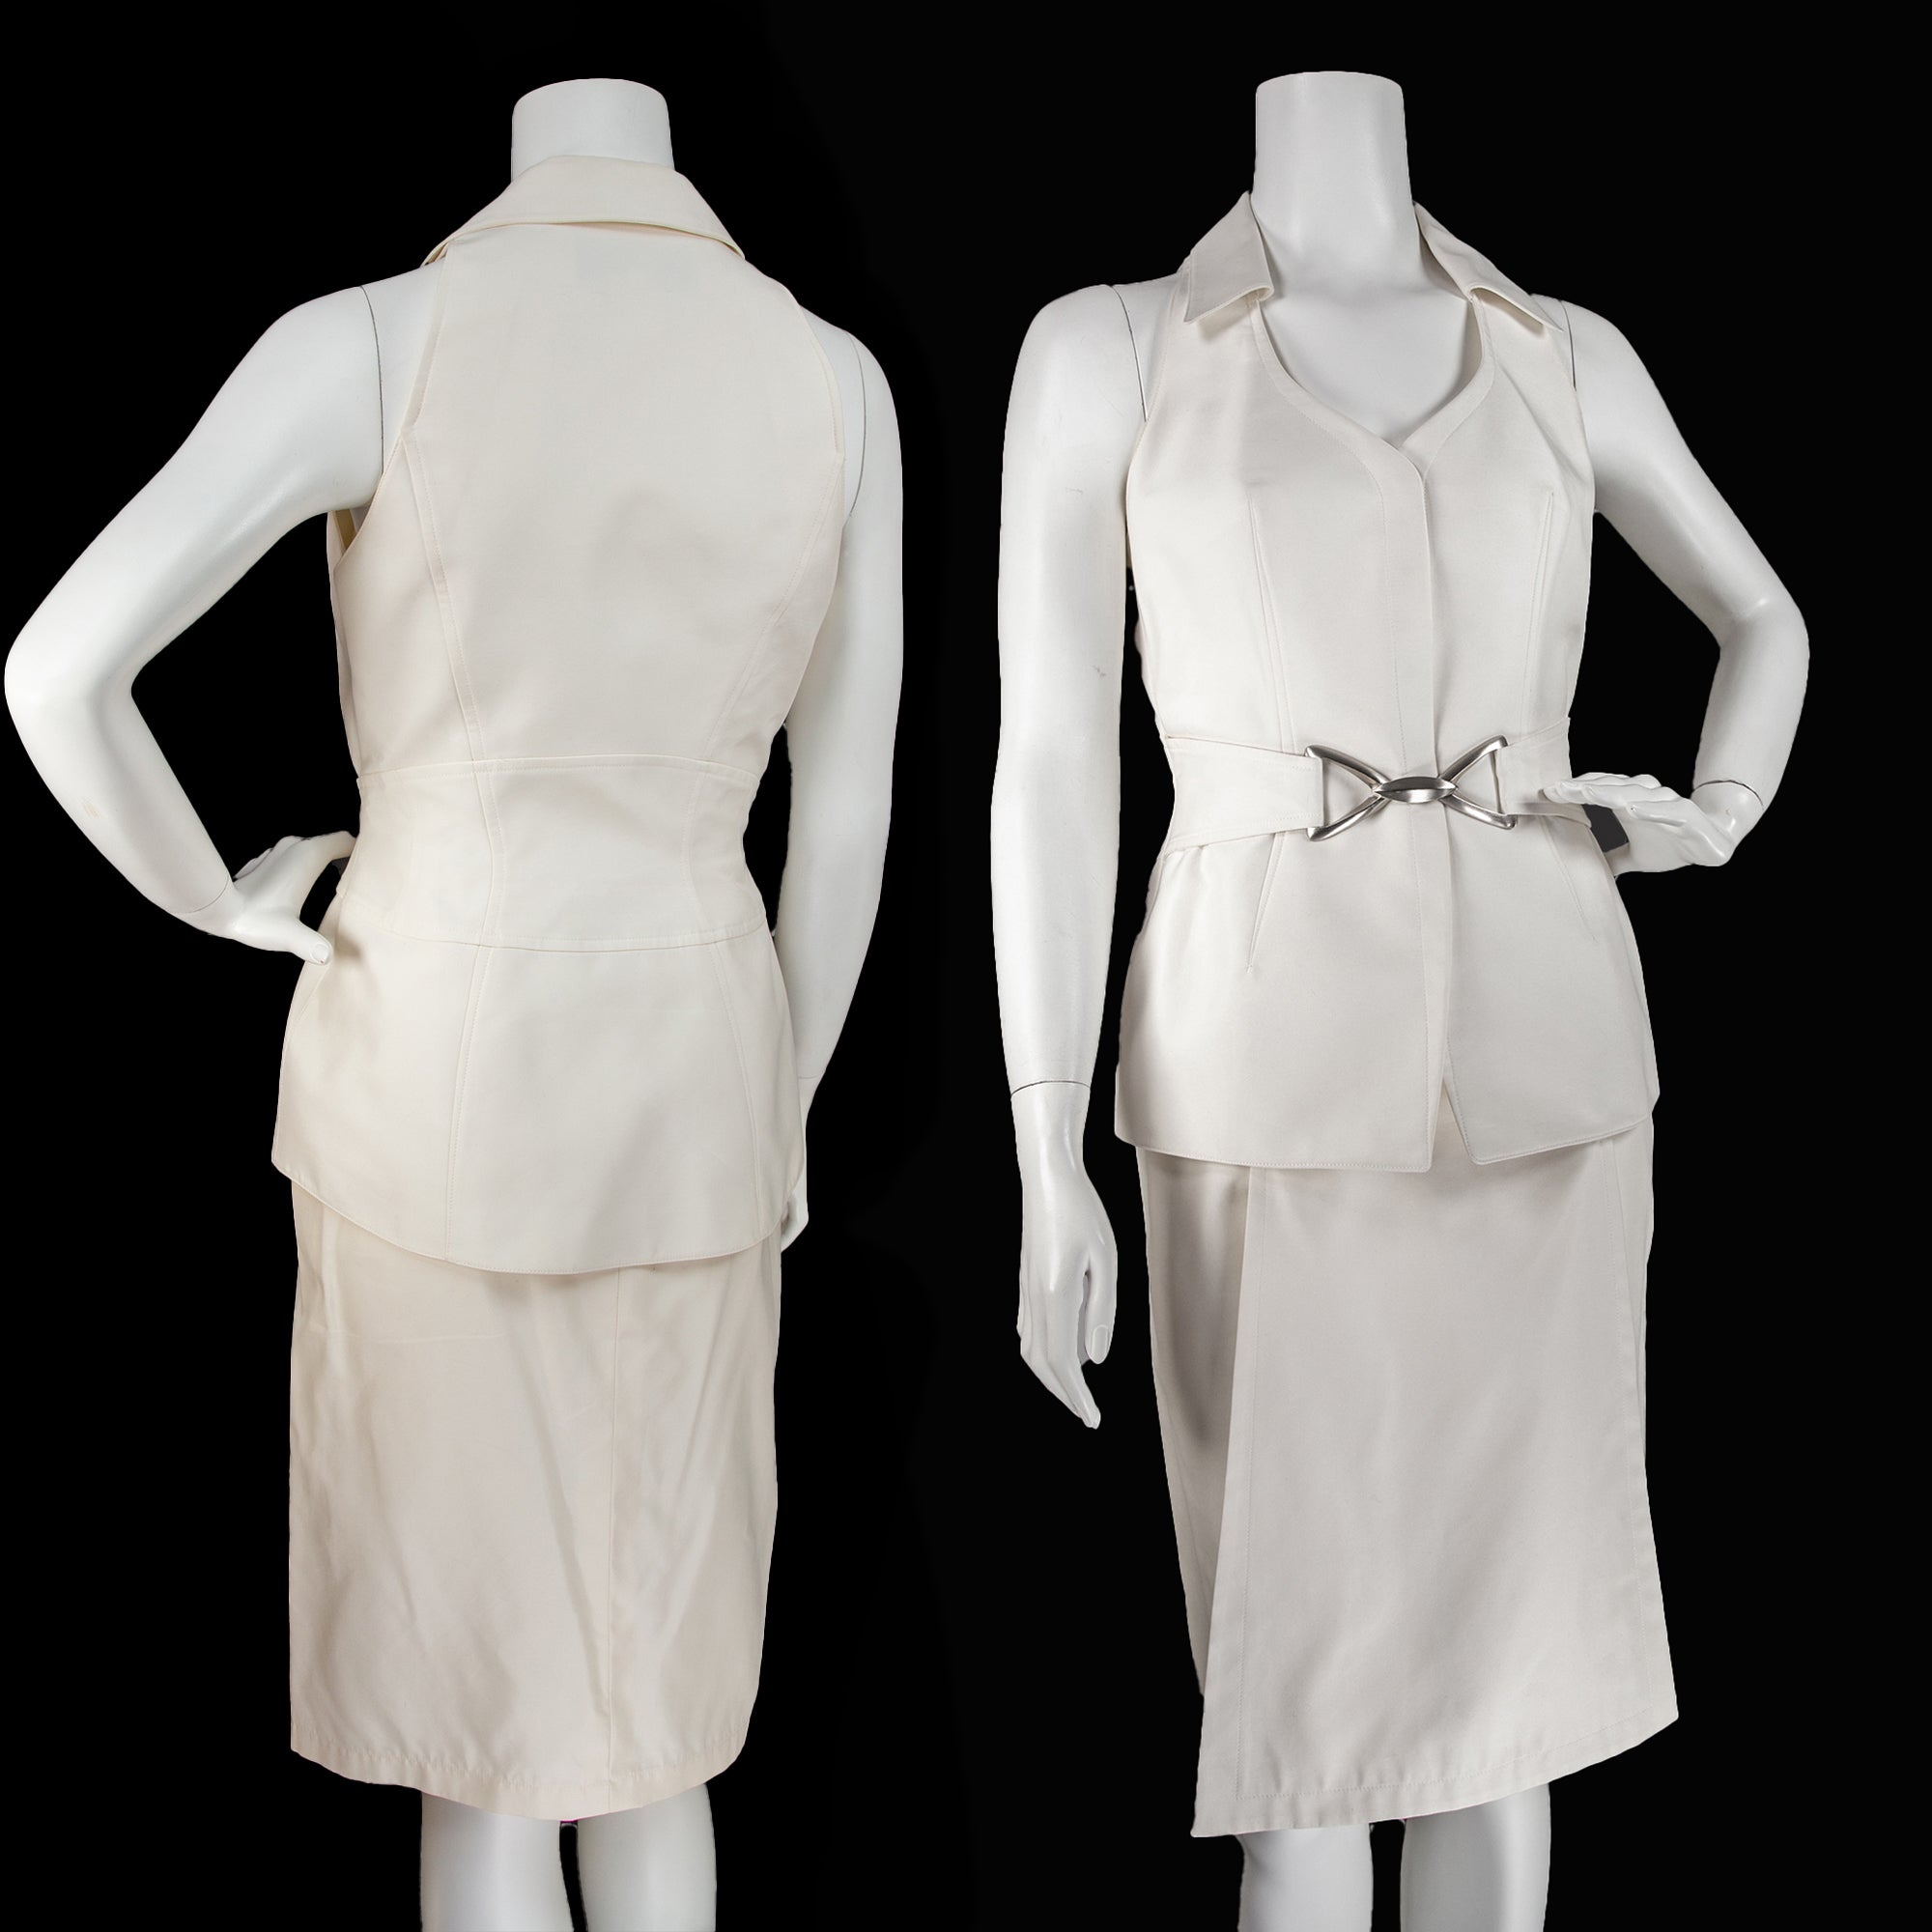 Vintage Thierry Mugler Couture Top  and Skirt Set